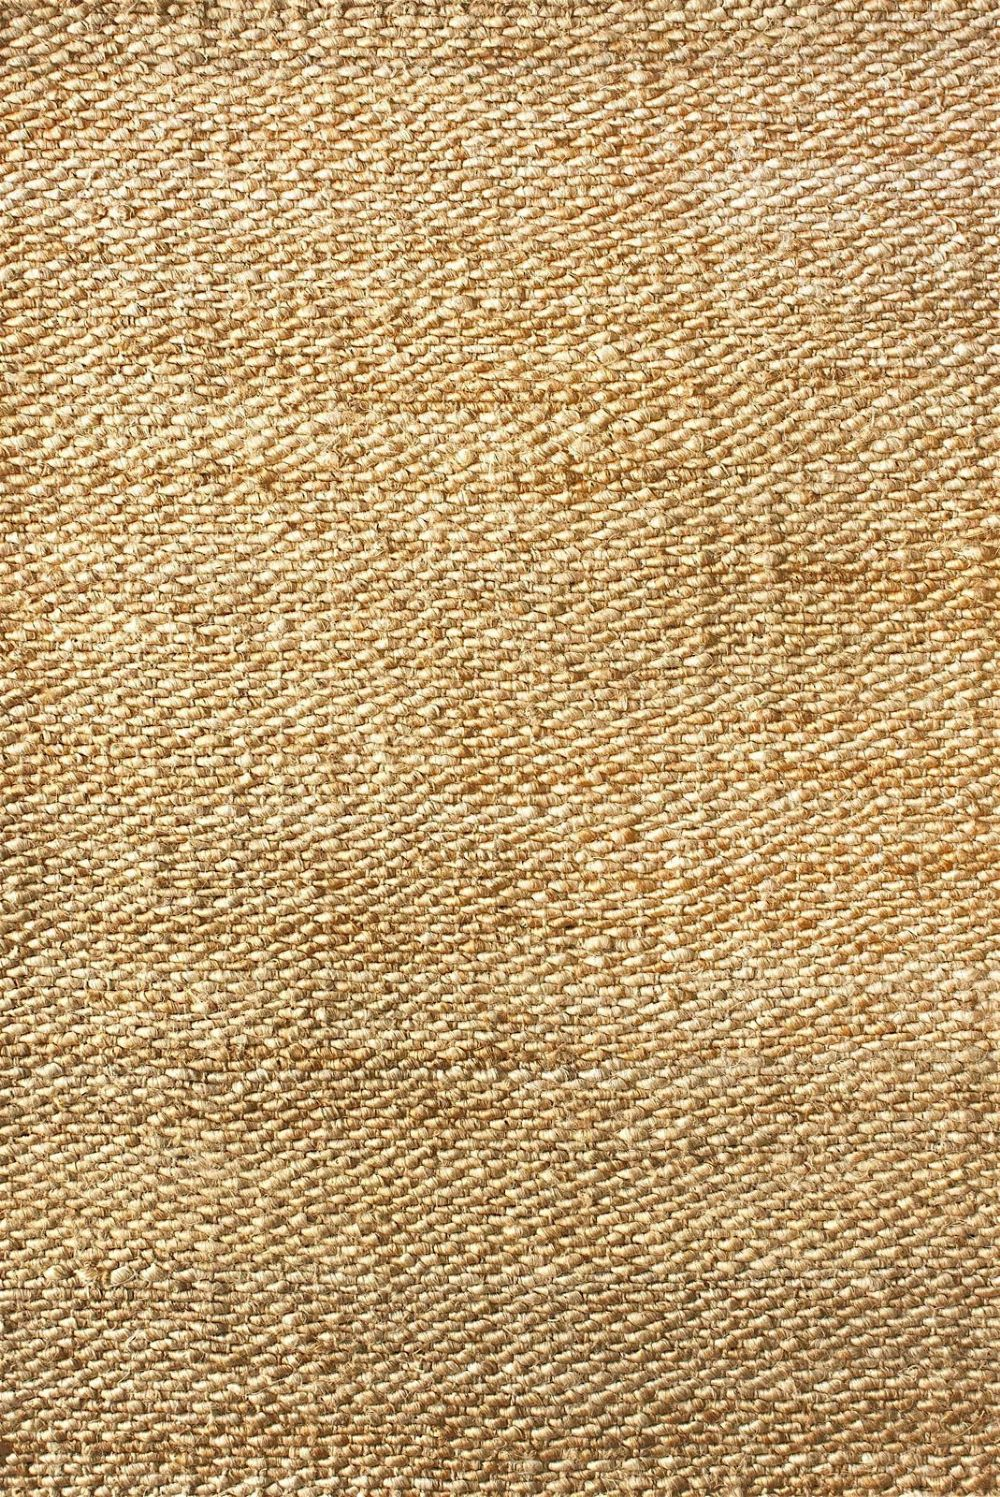 nuloom hailey natural fiber area rug collection